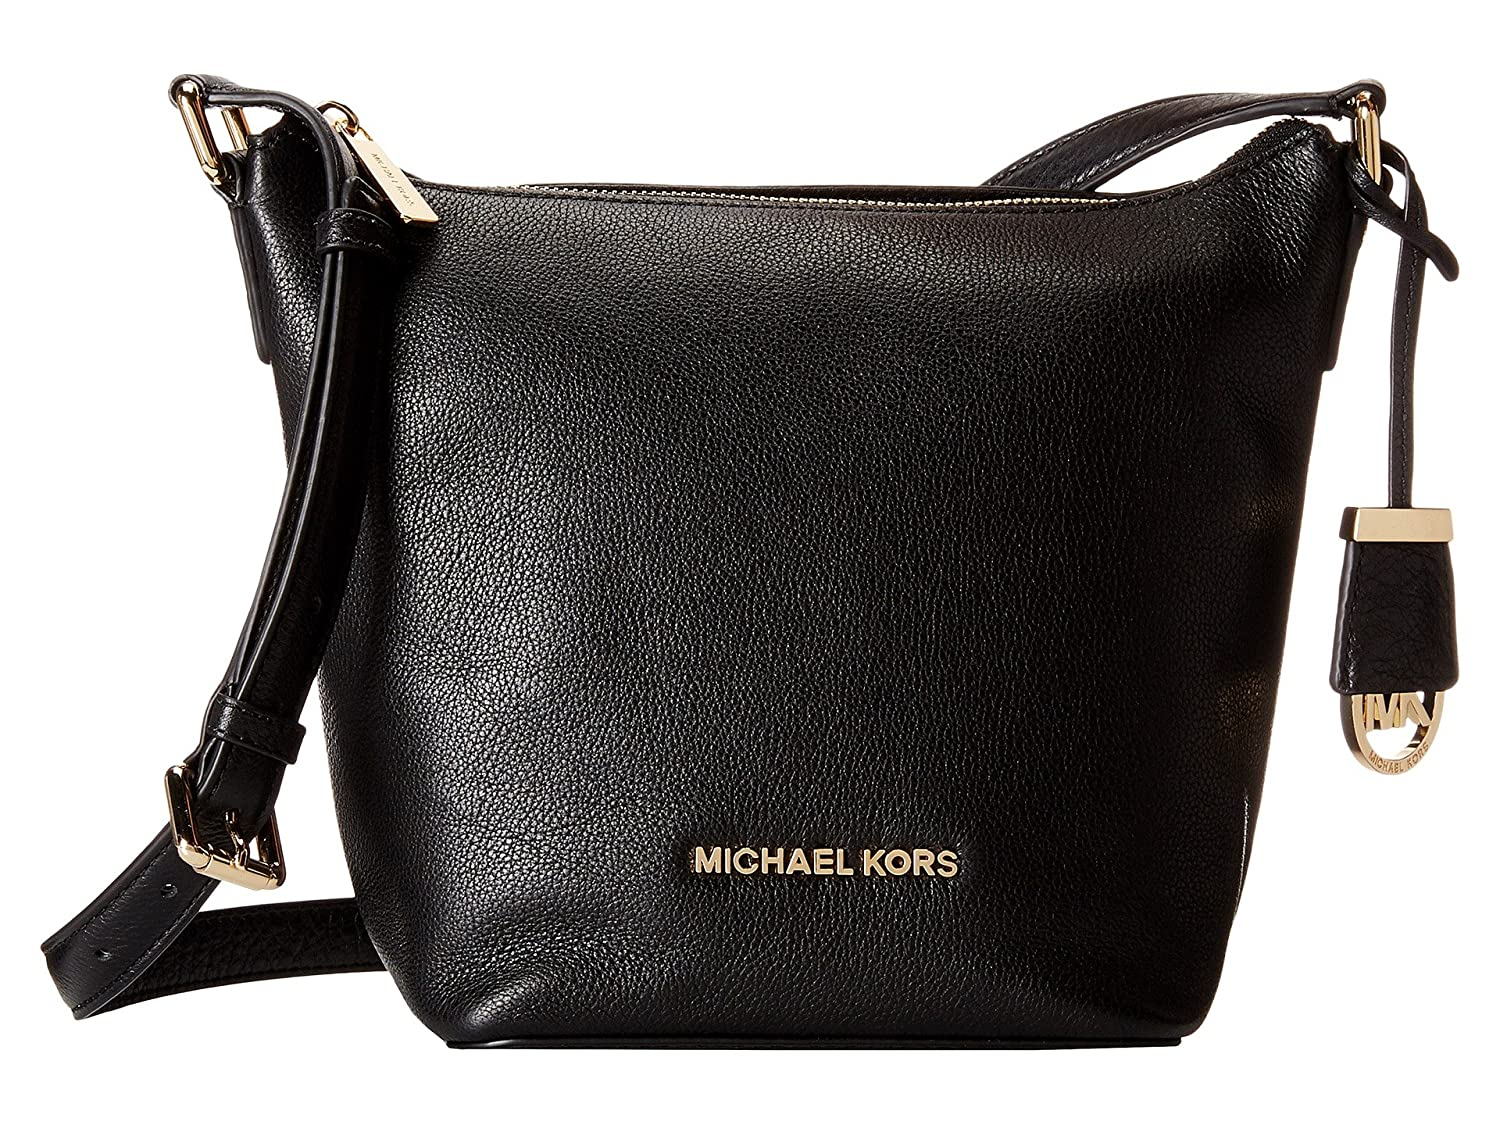 Michael Kors Bedford MD Messenger Leather - Black 30T5GBFM2L-001   B00WDW6RM8